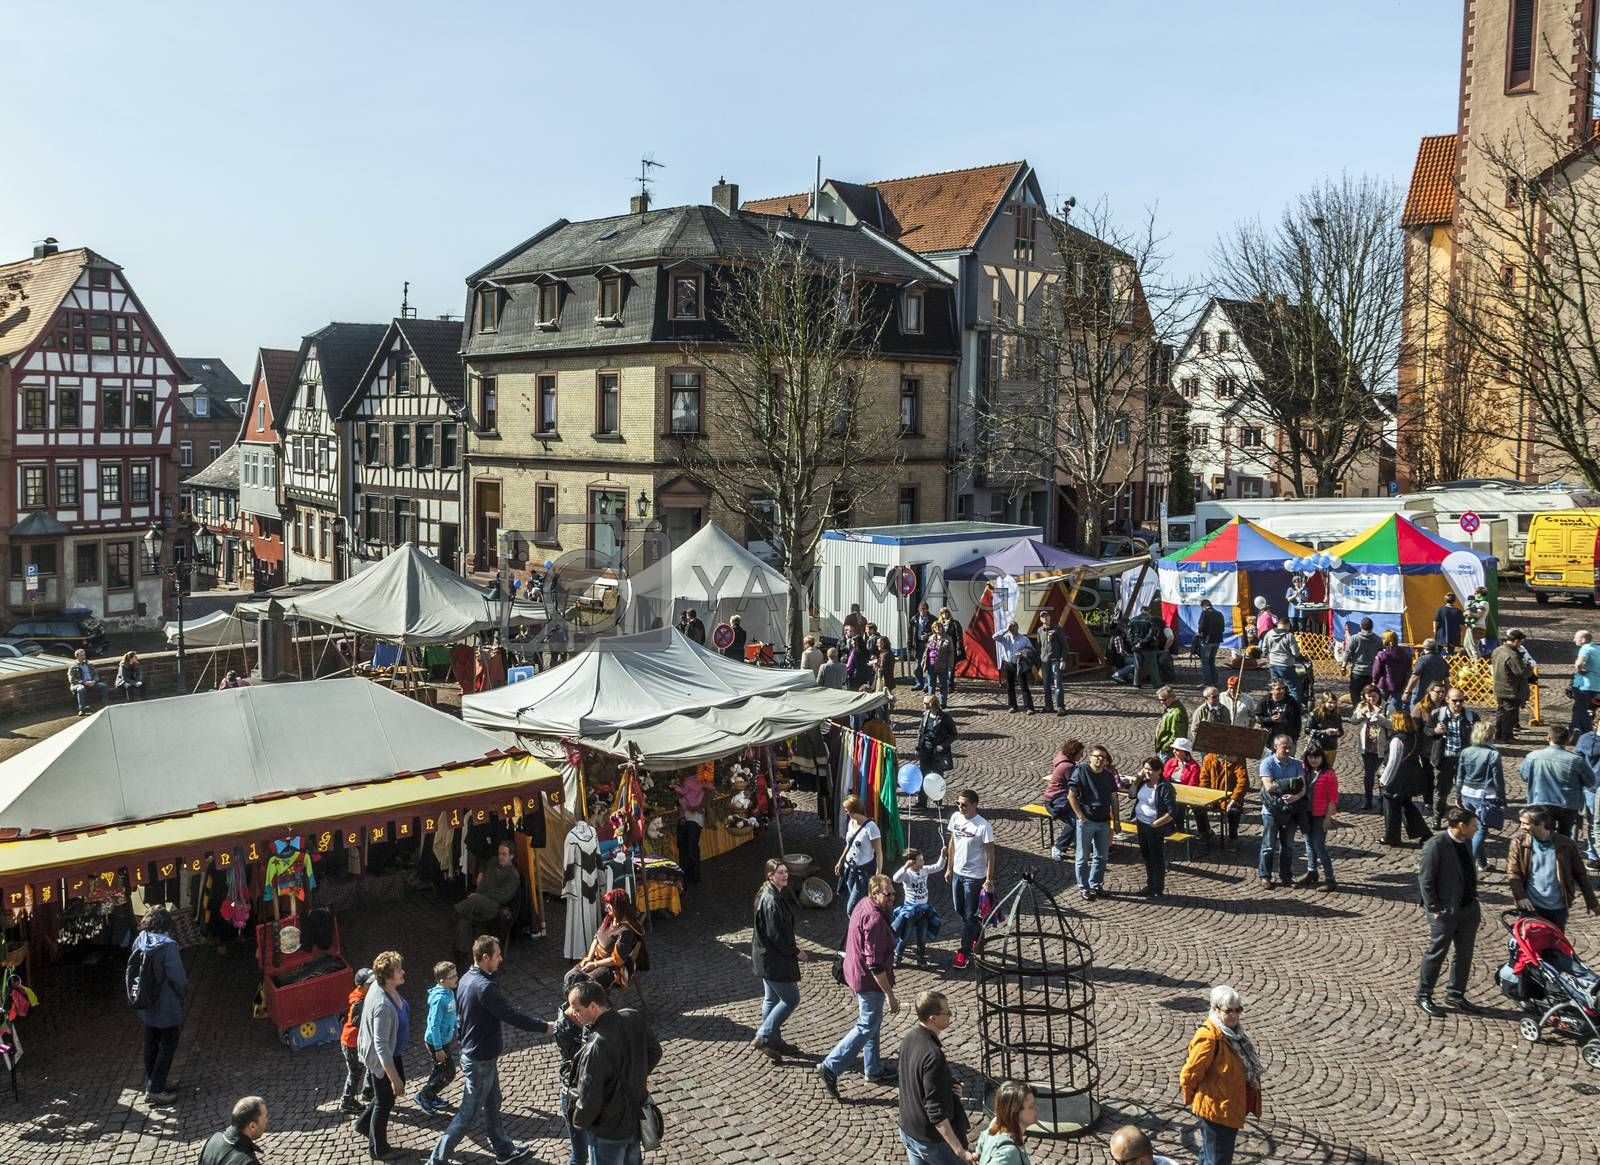 GELNHAUSEN, GERMANY - MARCH 9. people enjoy the 24th Barbarossamarkt festival on March 9, 2014 in Gelnhausen, Germany. The annual event lasts 4 days and takes place all over the city.